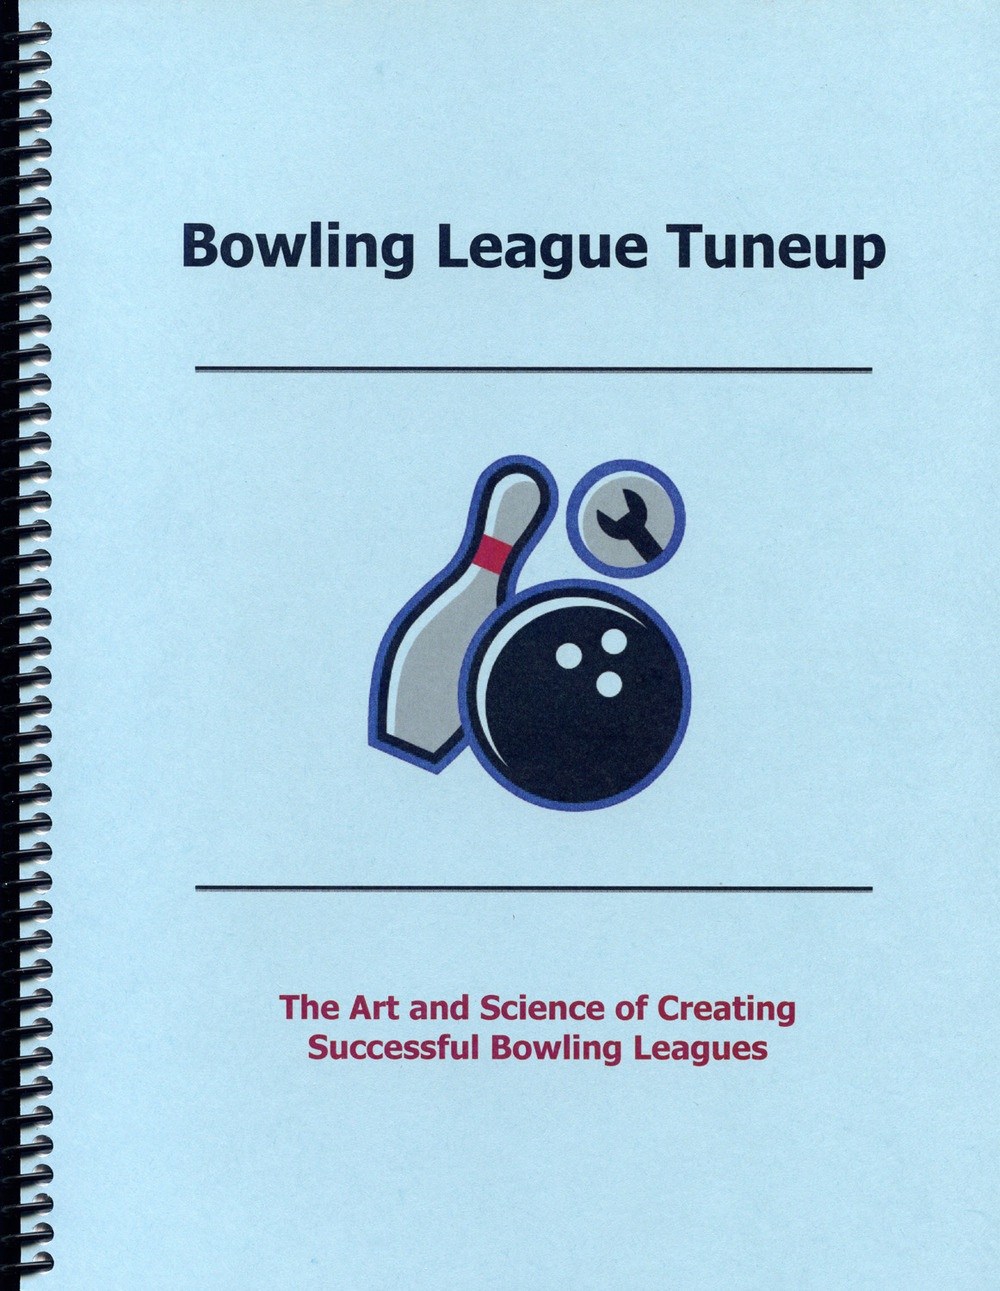 Click the manual to bring up the full Bowling League Tuneup manual in your brower's PDF viewer.